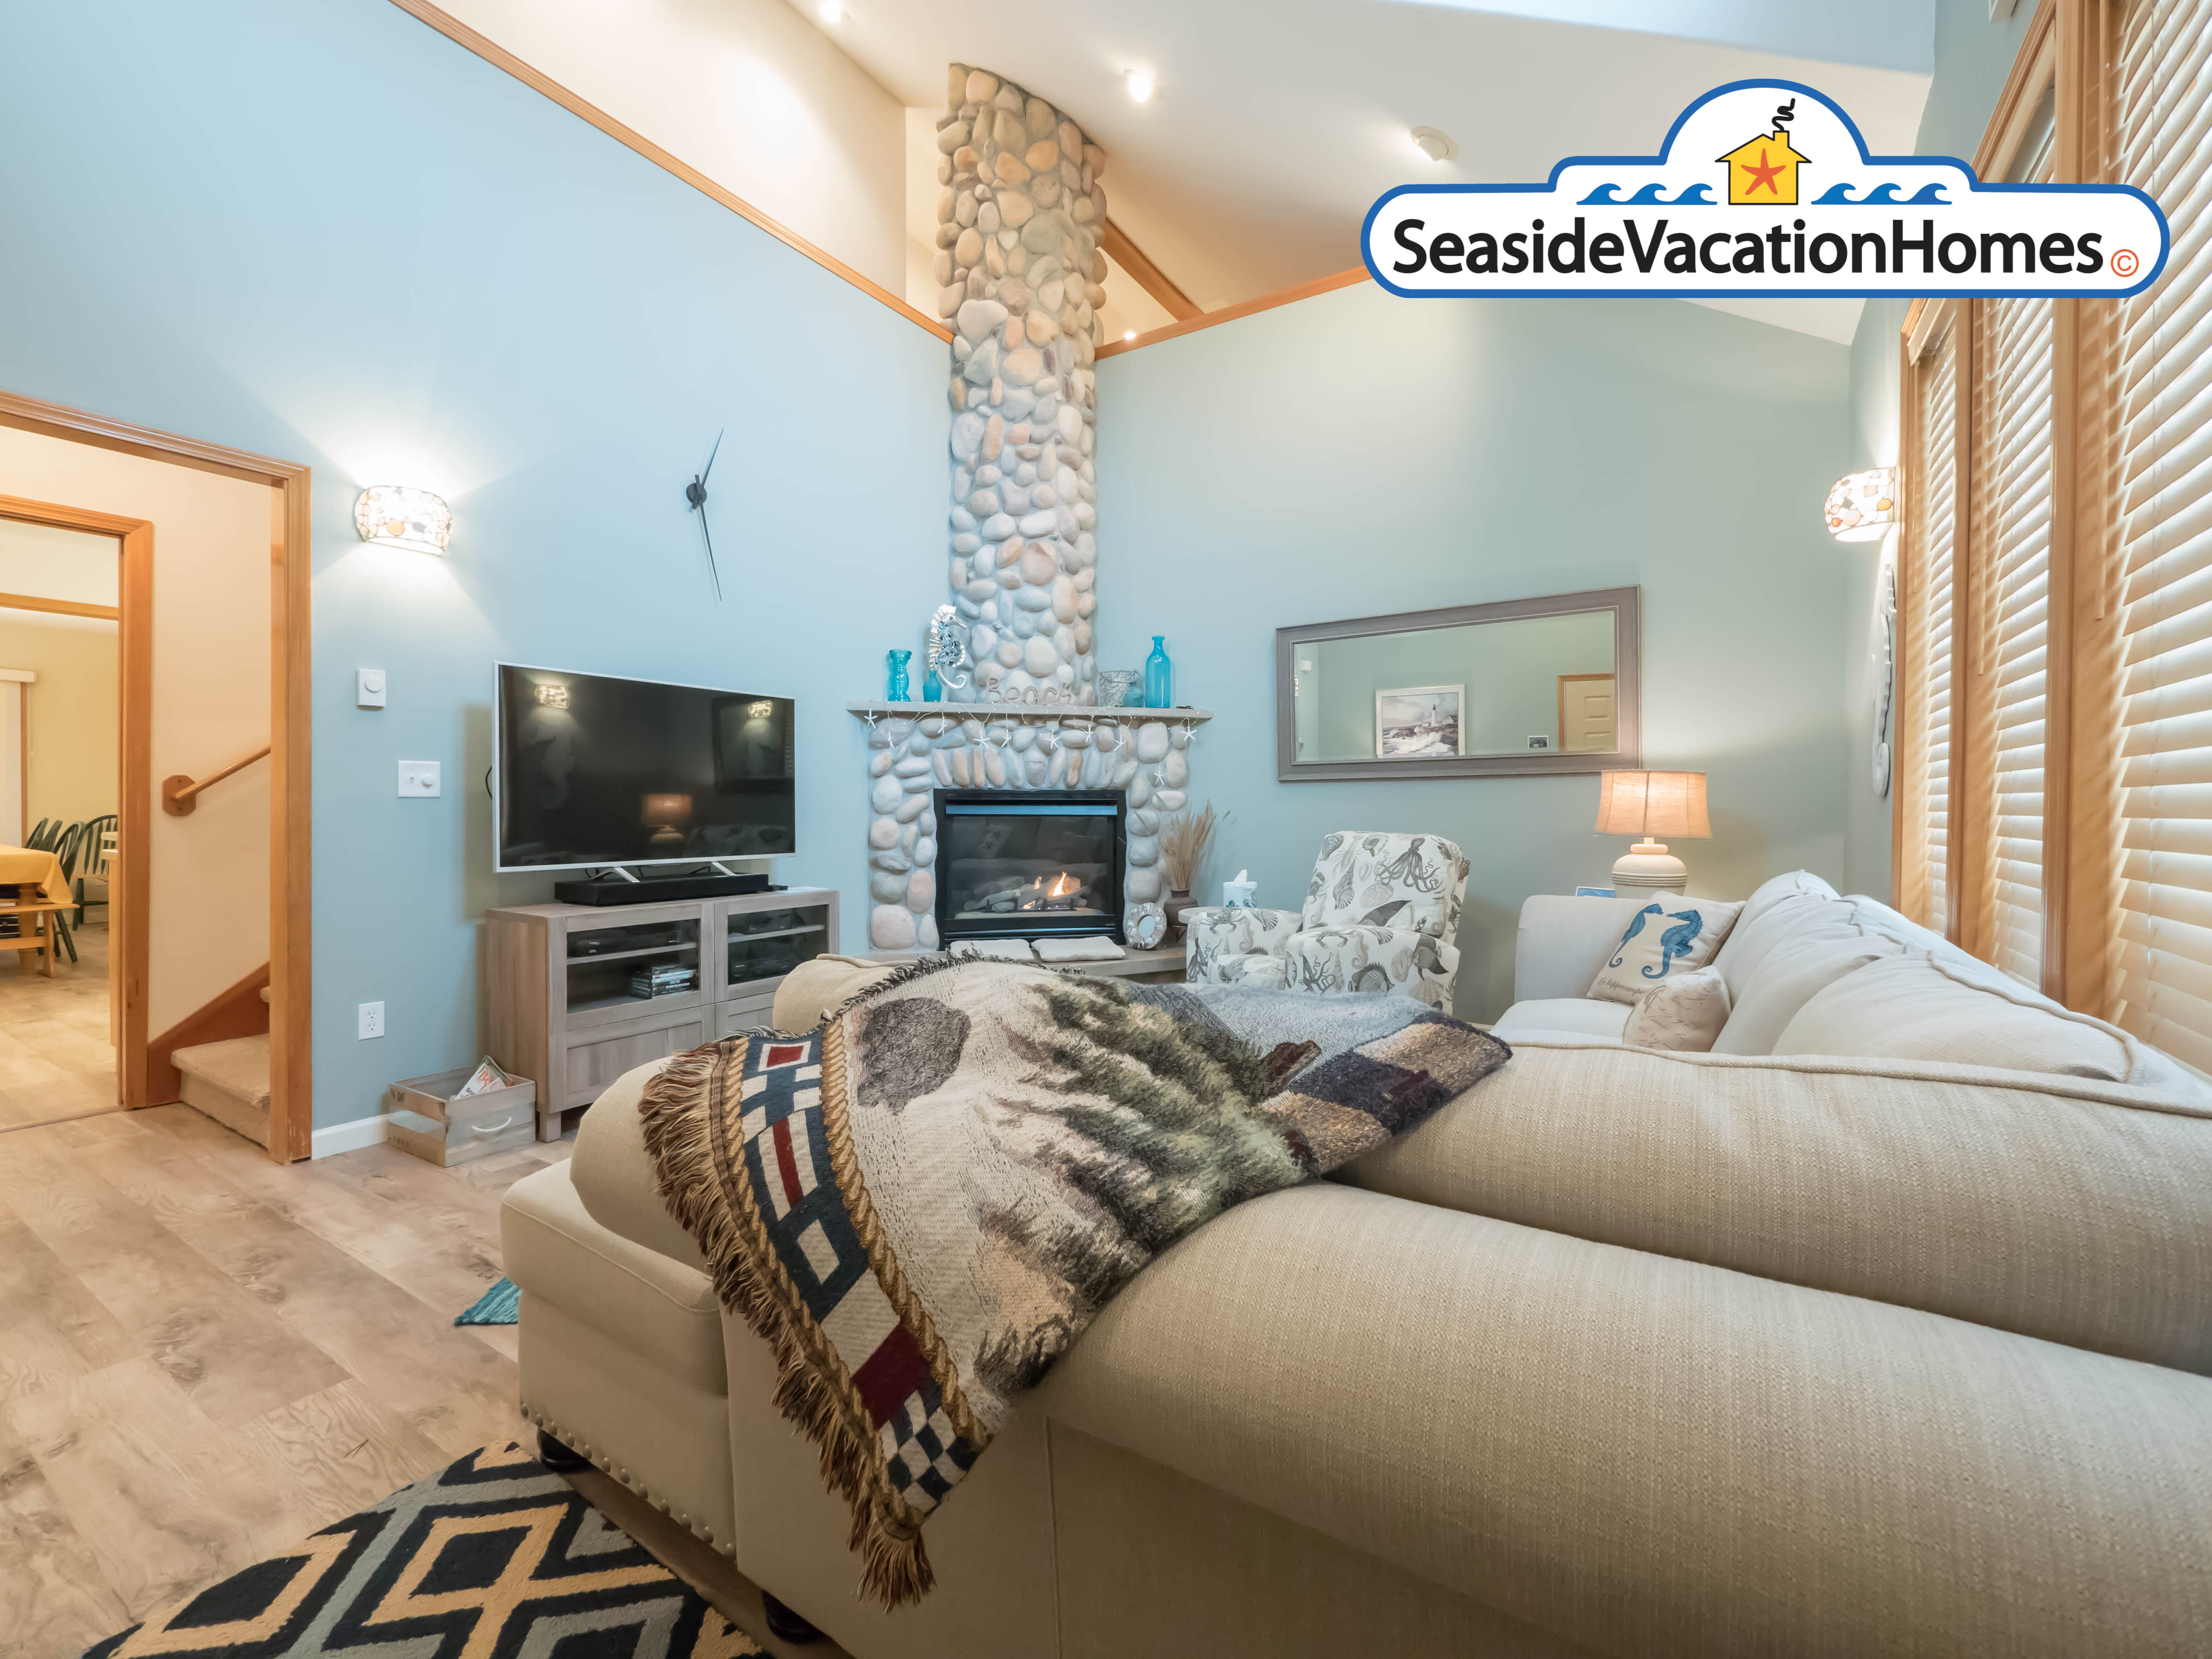 Family vacation rentals in Seaside, OR close to the beach